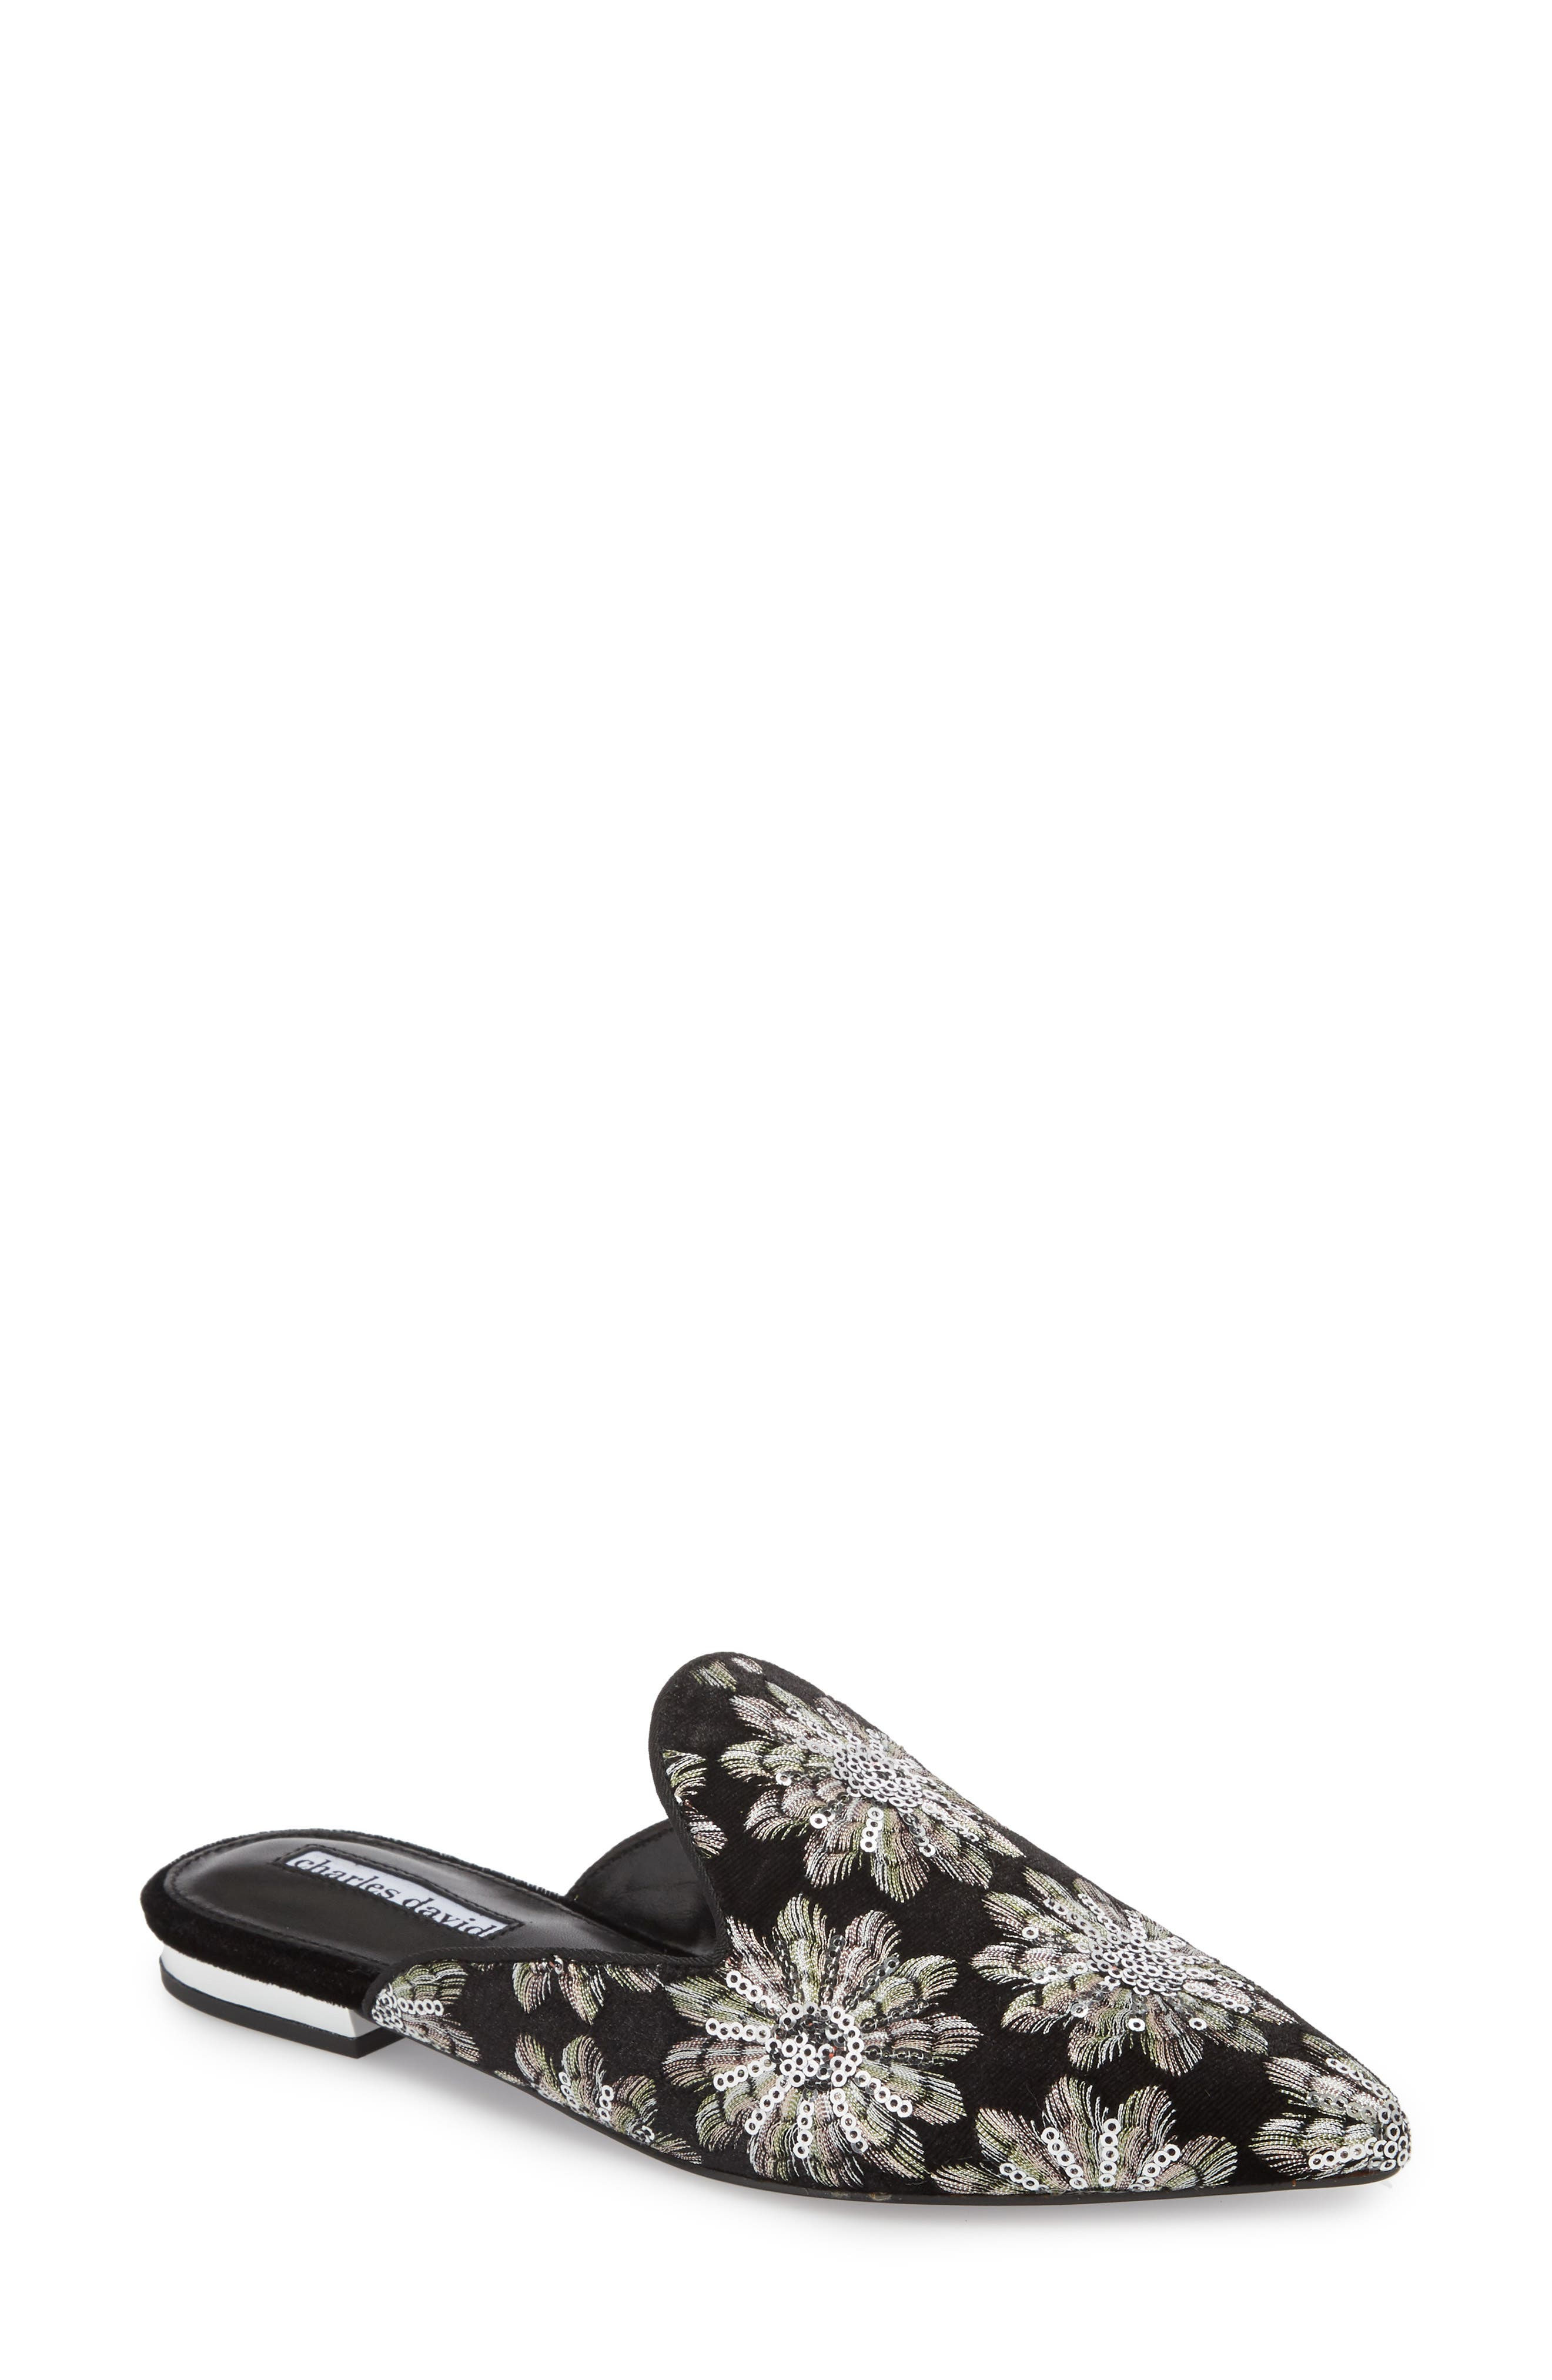 Willis Loafer Mule,                             Main thumbnail 1, color,                             SILVER/ BLACK FABRIC